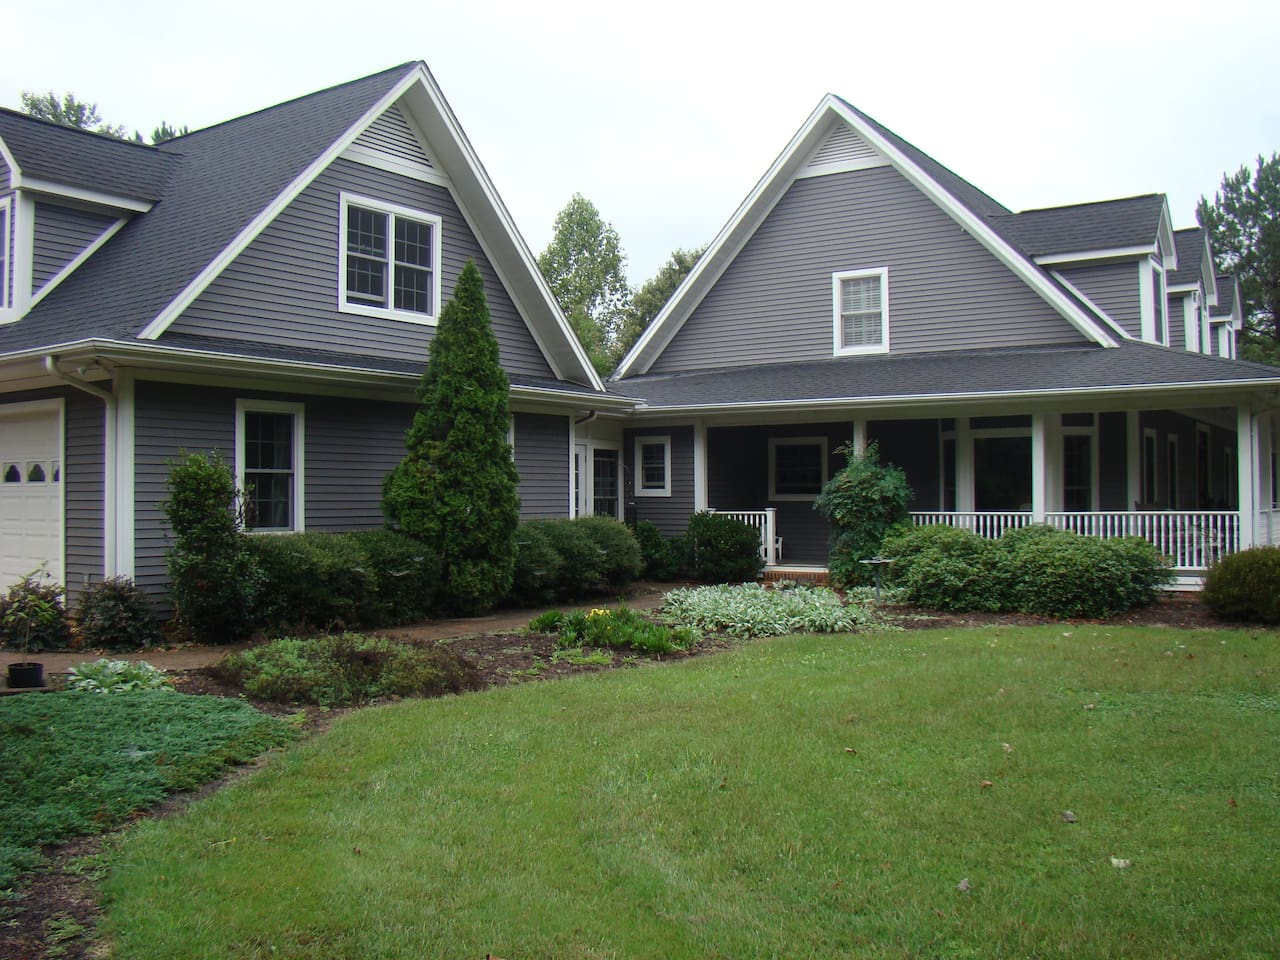 Beautiful location right next to the Main House at Bolt Farm. Ample parking. Safe, quiet & private. 40 acre farm with organic garden & TREEHOUSE!